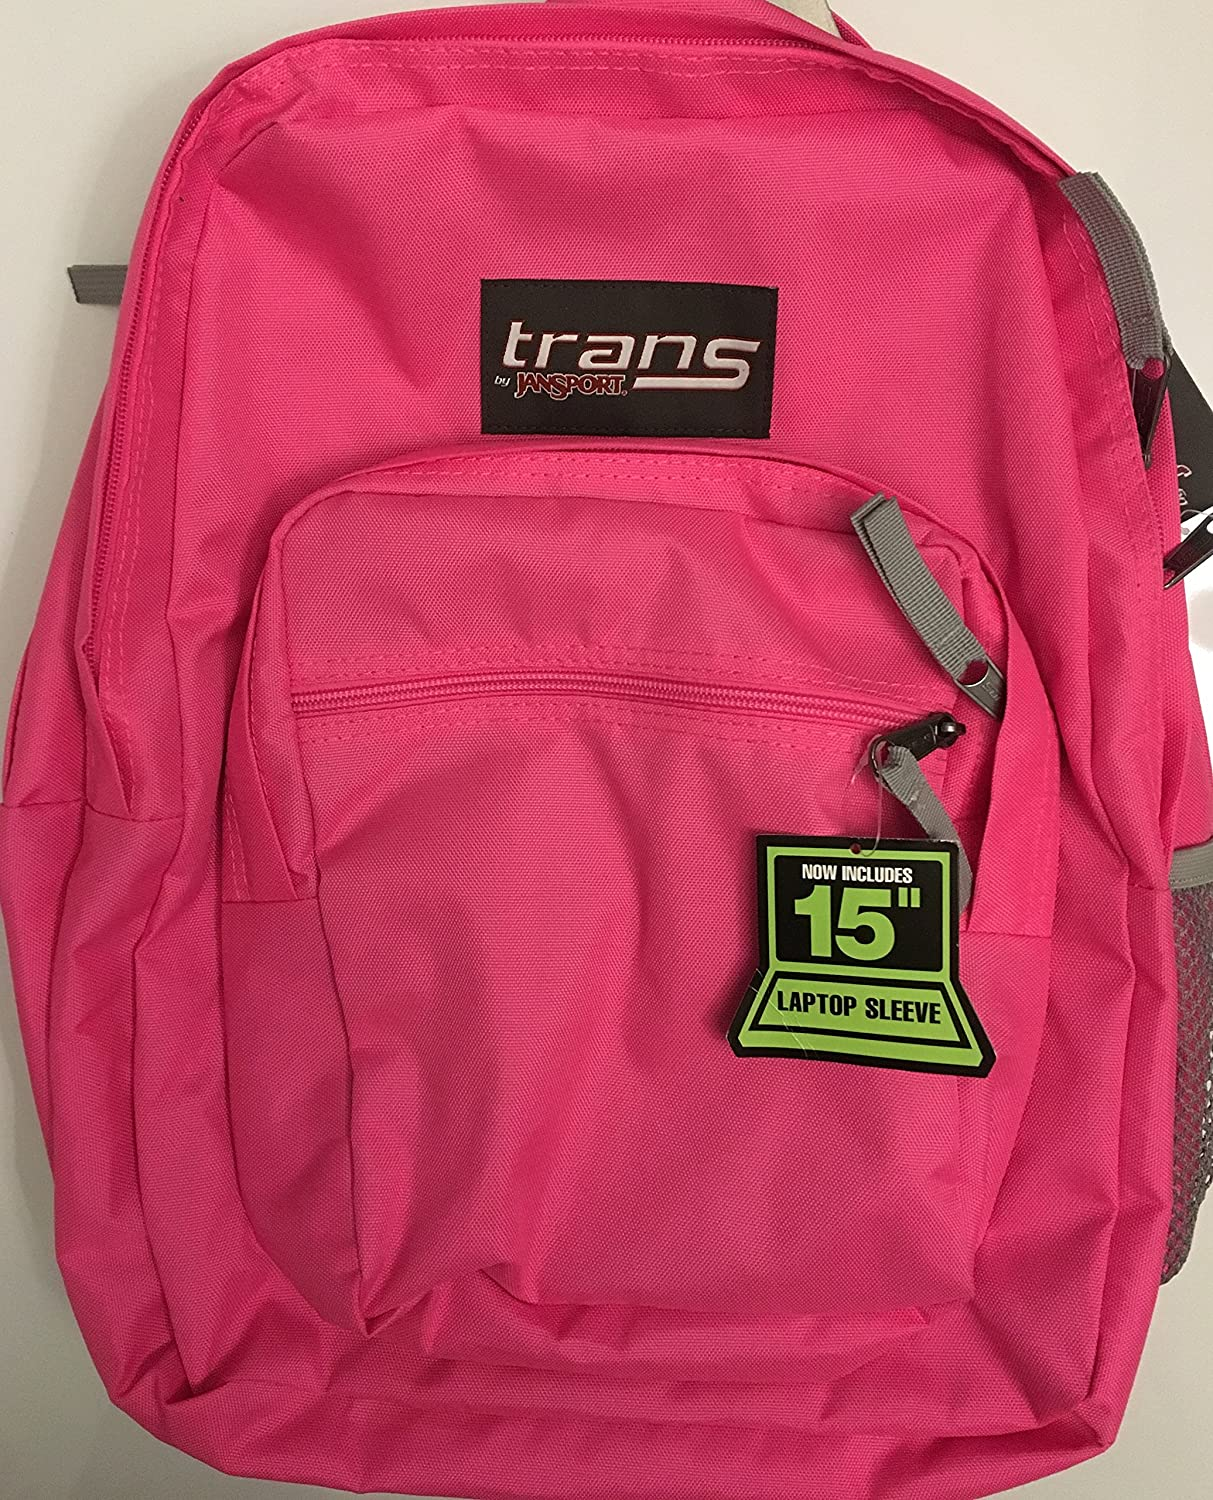 Trans Jansport Backpack Lifetime Warranty | Court Appointed